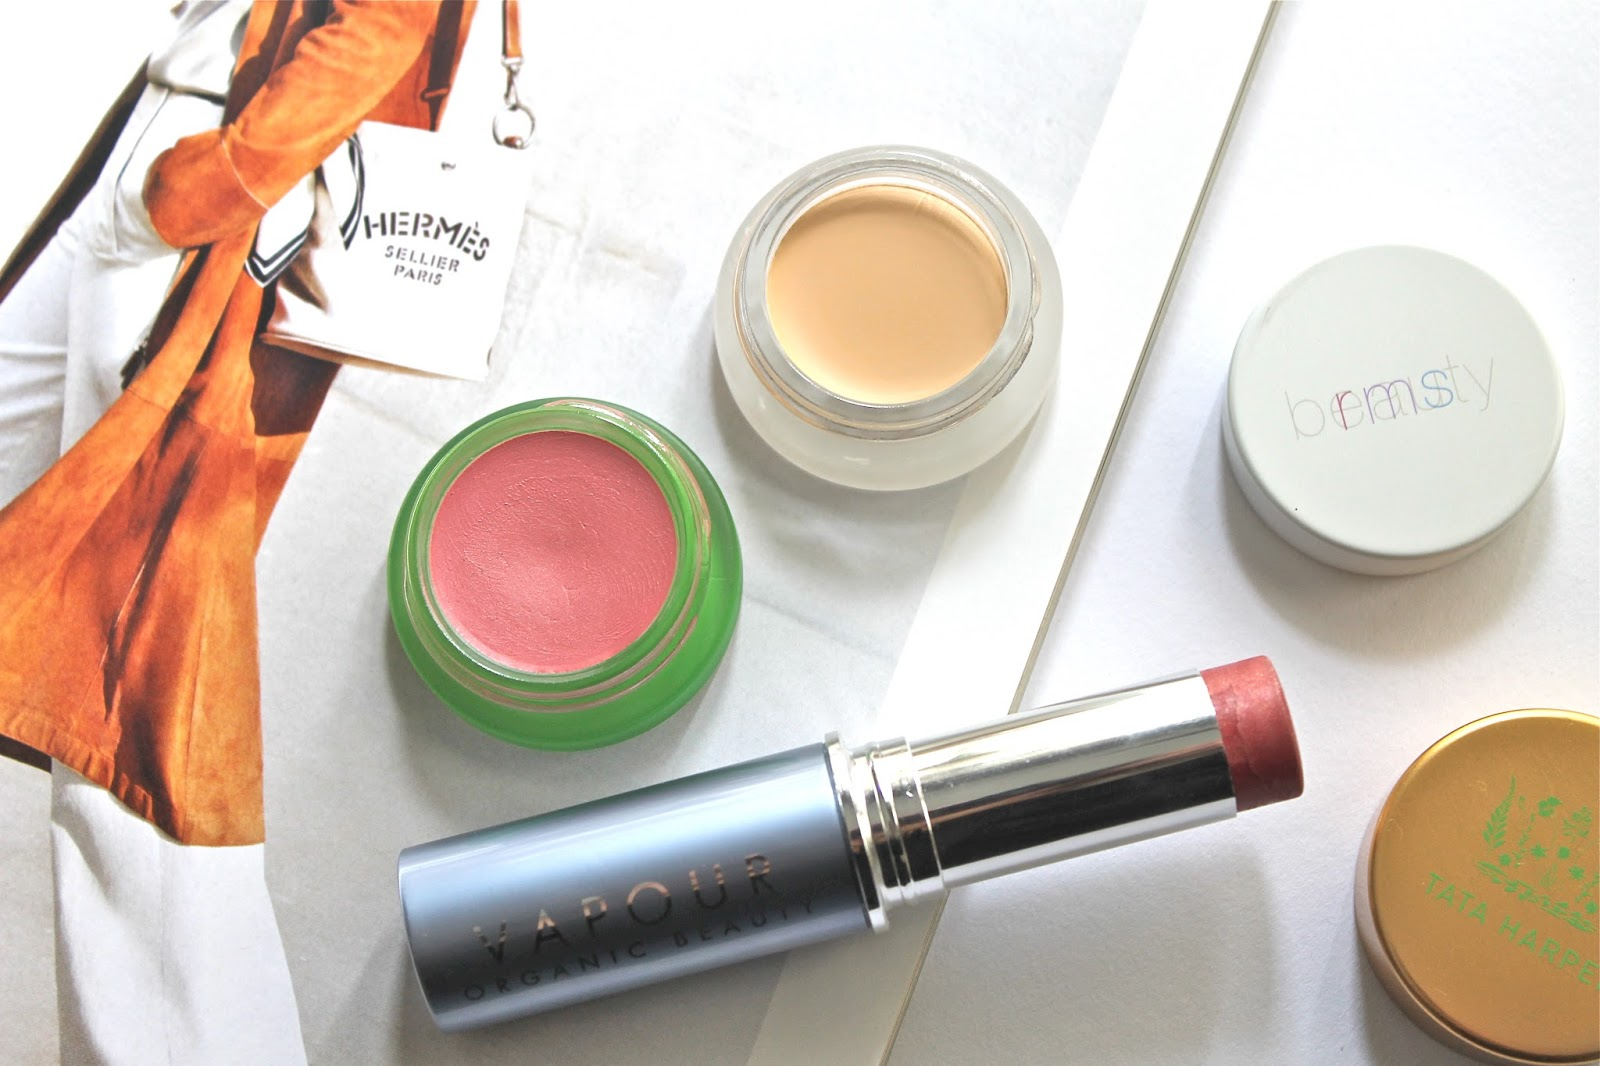 NO-NASTIES: MAKEUP FOR A NECESSARY GLOW